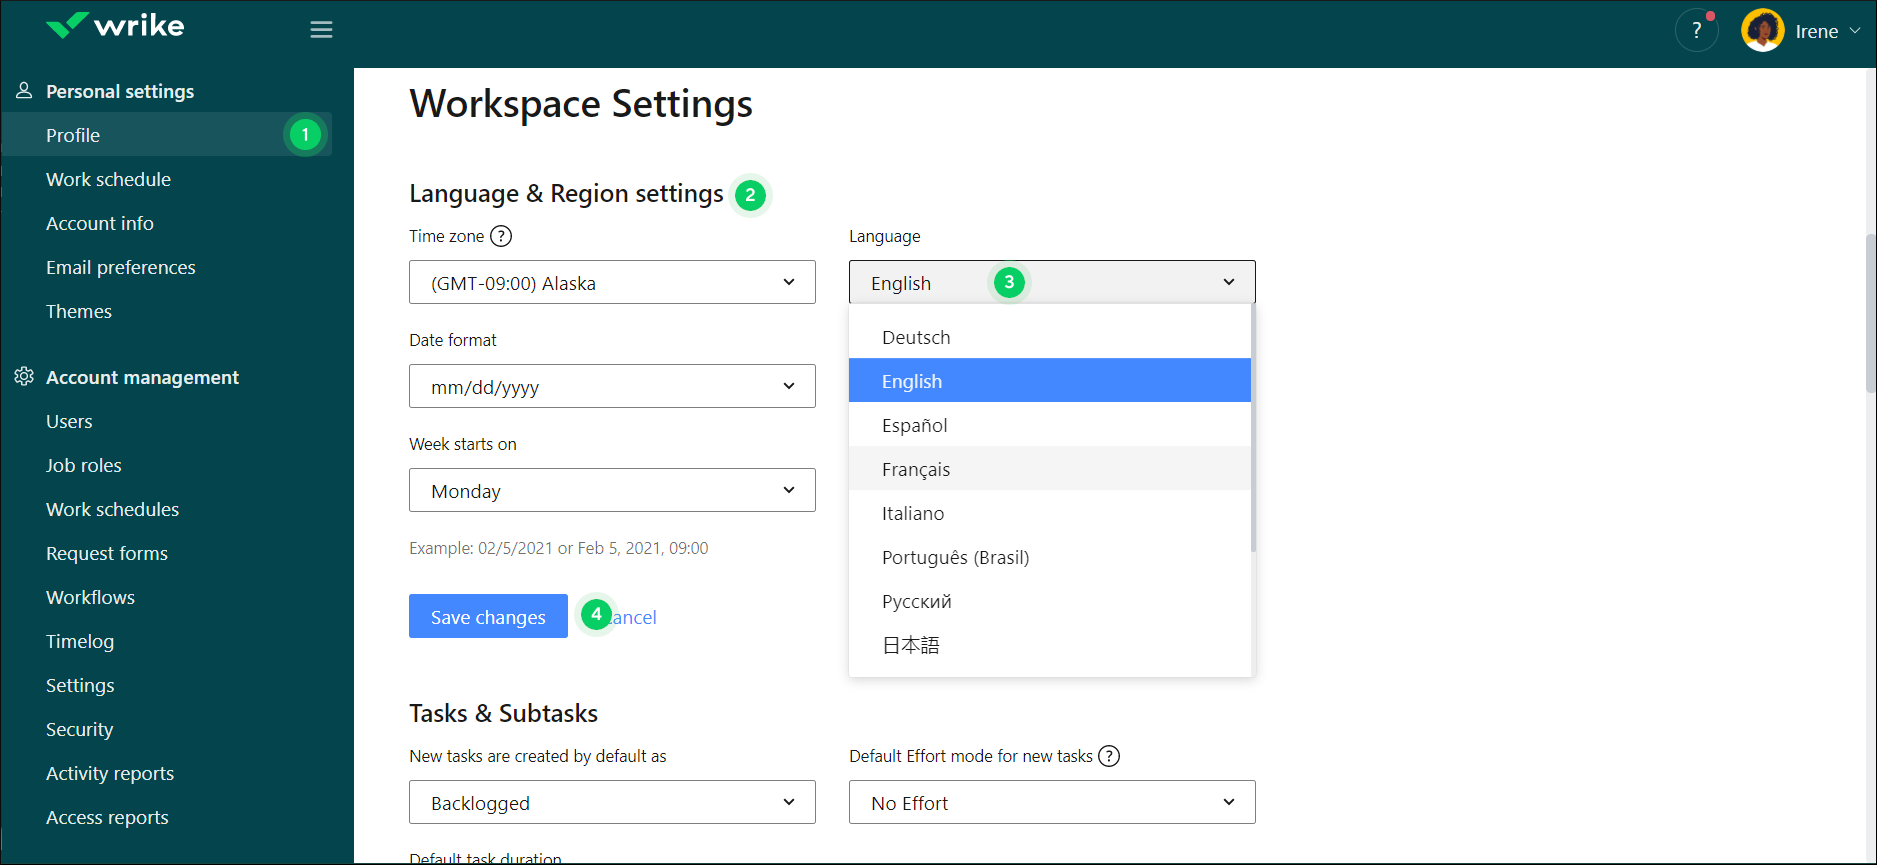 Changing_Your_Language_Settings_-_Change_your_language_in_Wrike.png